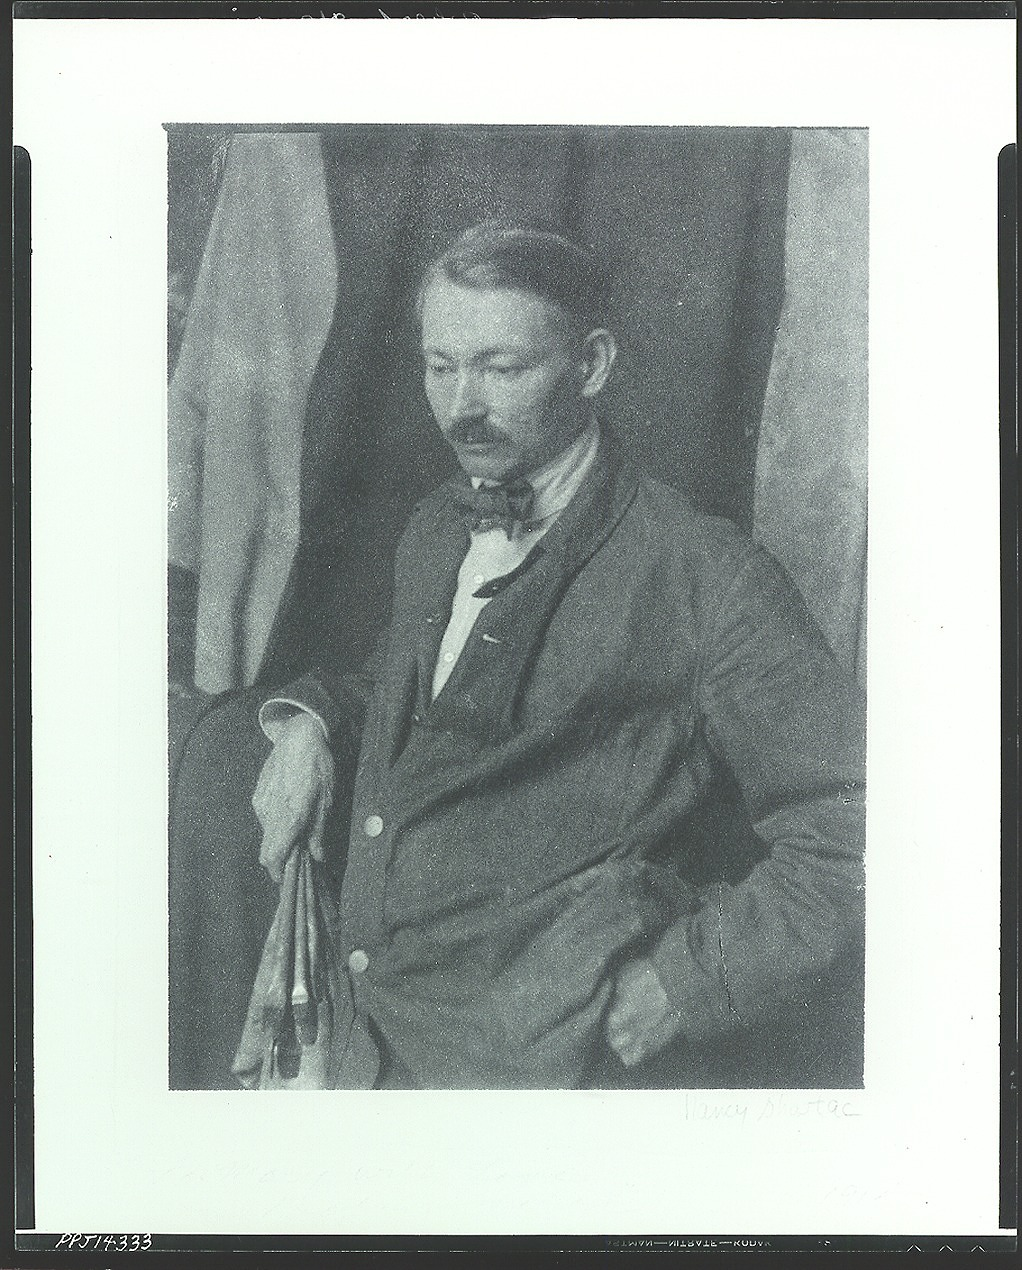 Robert Henri [photograph] / (photographed by Peter A. Juley & Son)